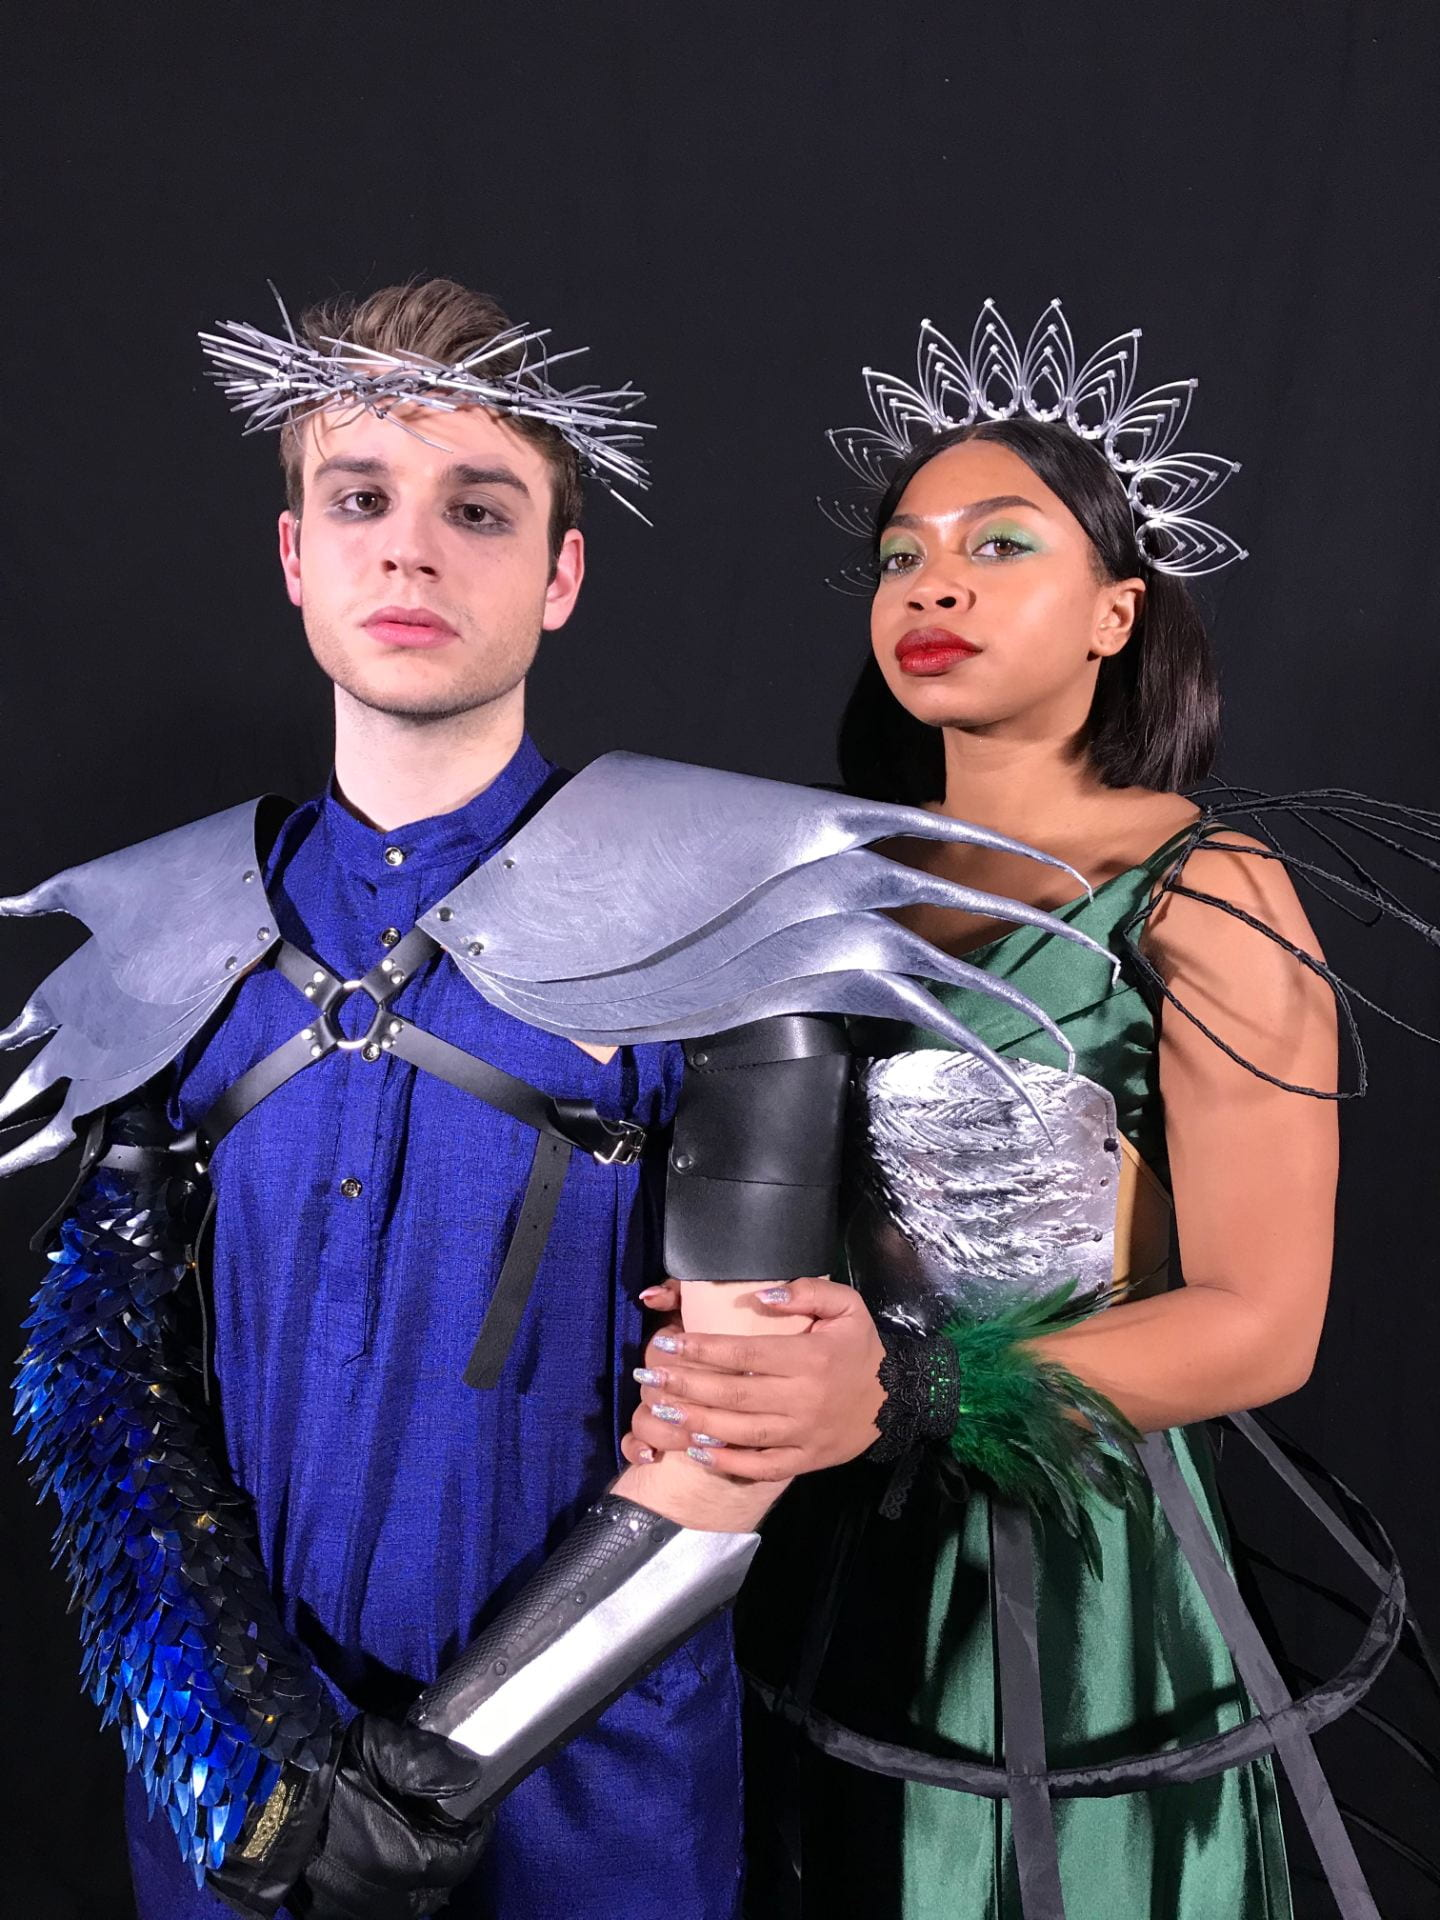 Toby Davis and Eboni Cain portray Claudius and Gertrude in Hamlet: Fall of the Sparrow.